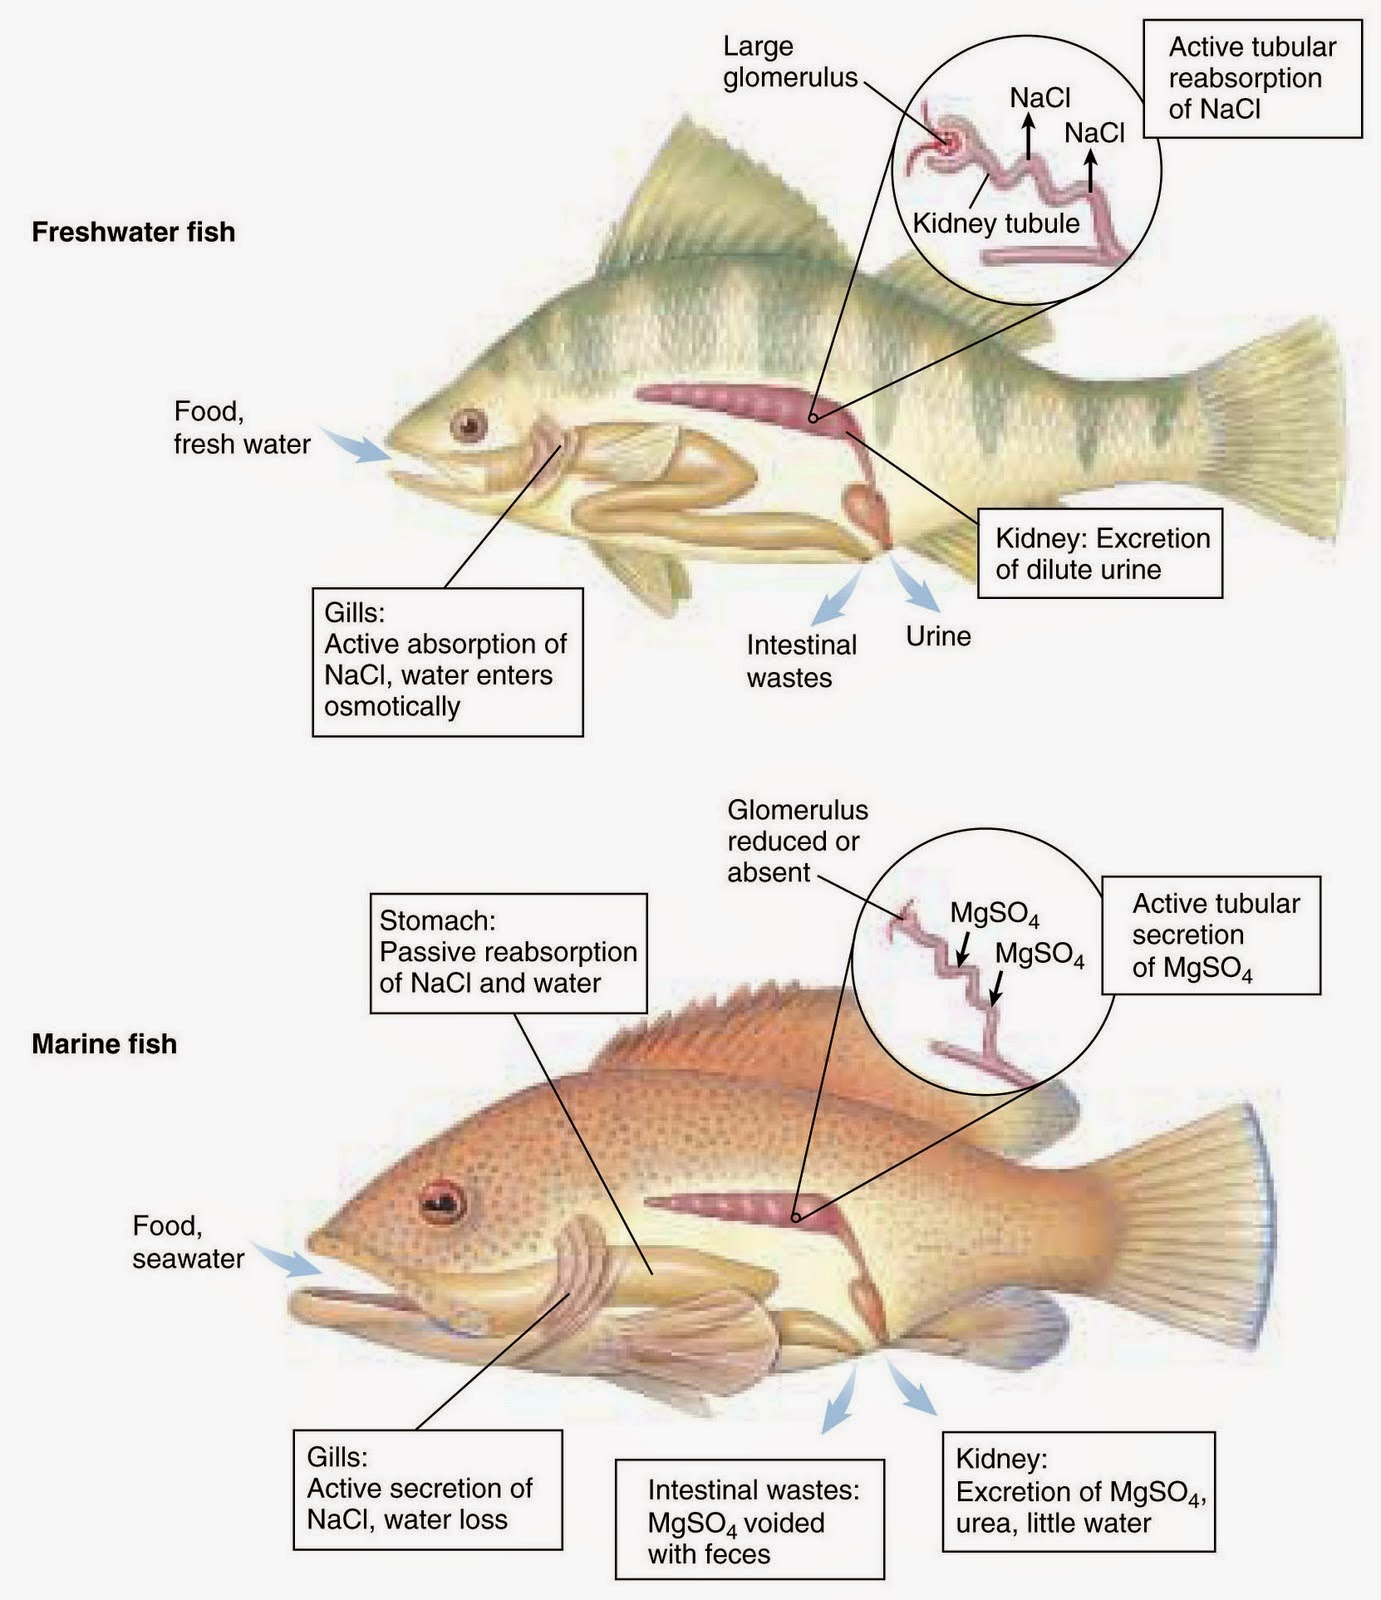 Freshwater fish kidney dilute urine - Osmoregulation In Freshwater Fish And Marine Fish